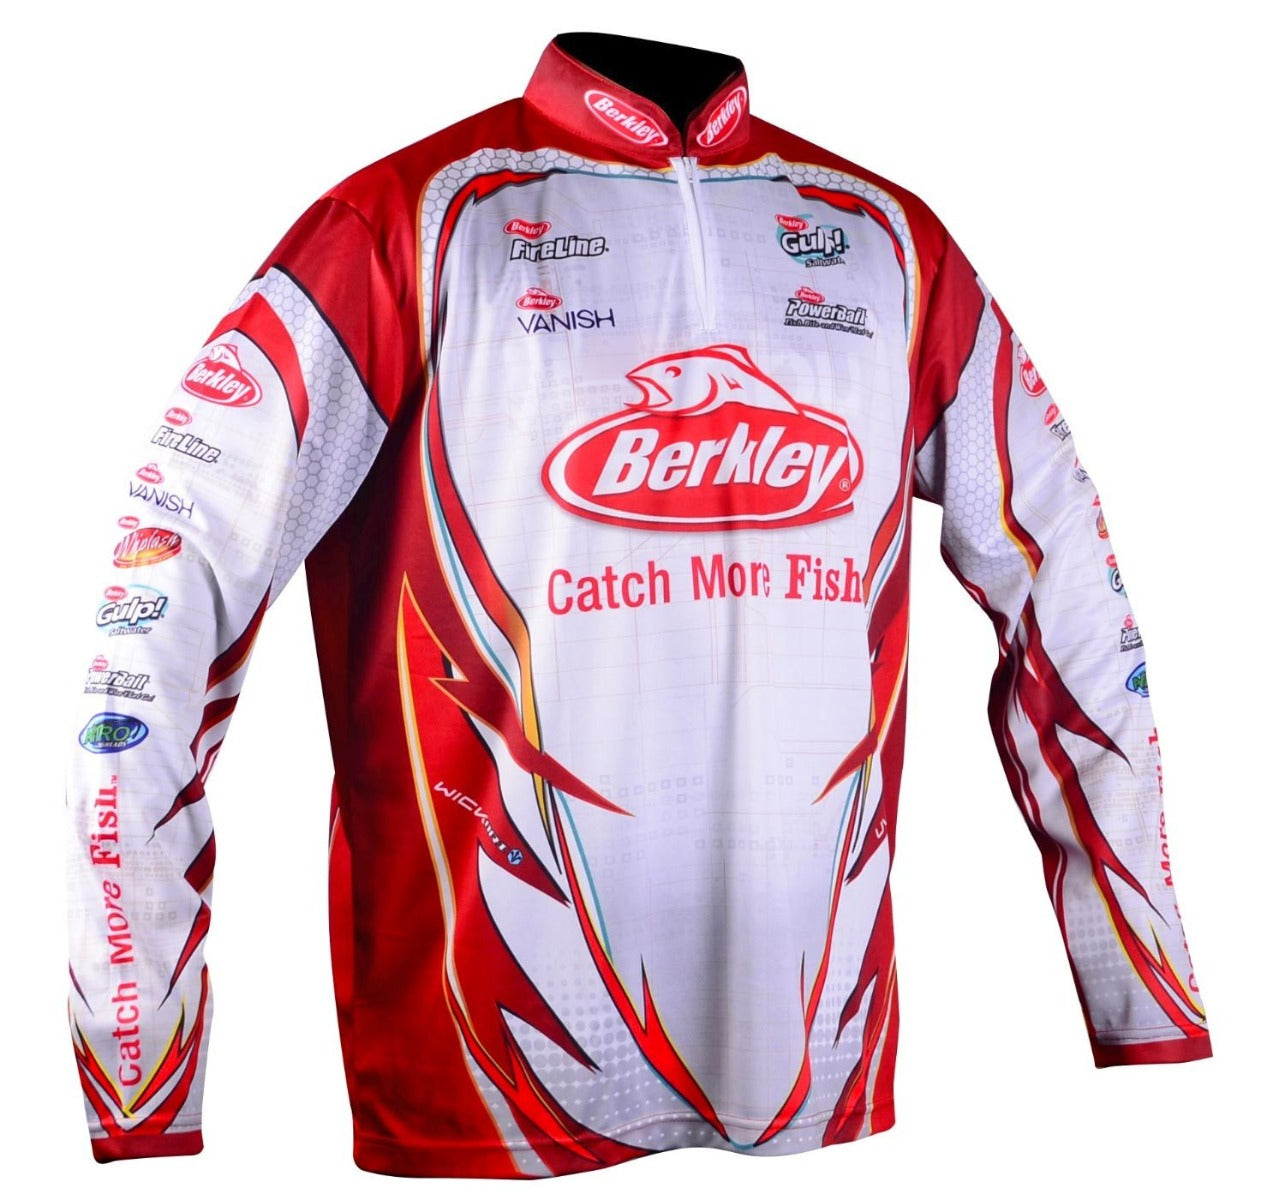 Berkley Pro Long Sleeve UPF 30+ Fishing Shirt